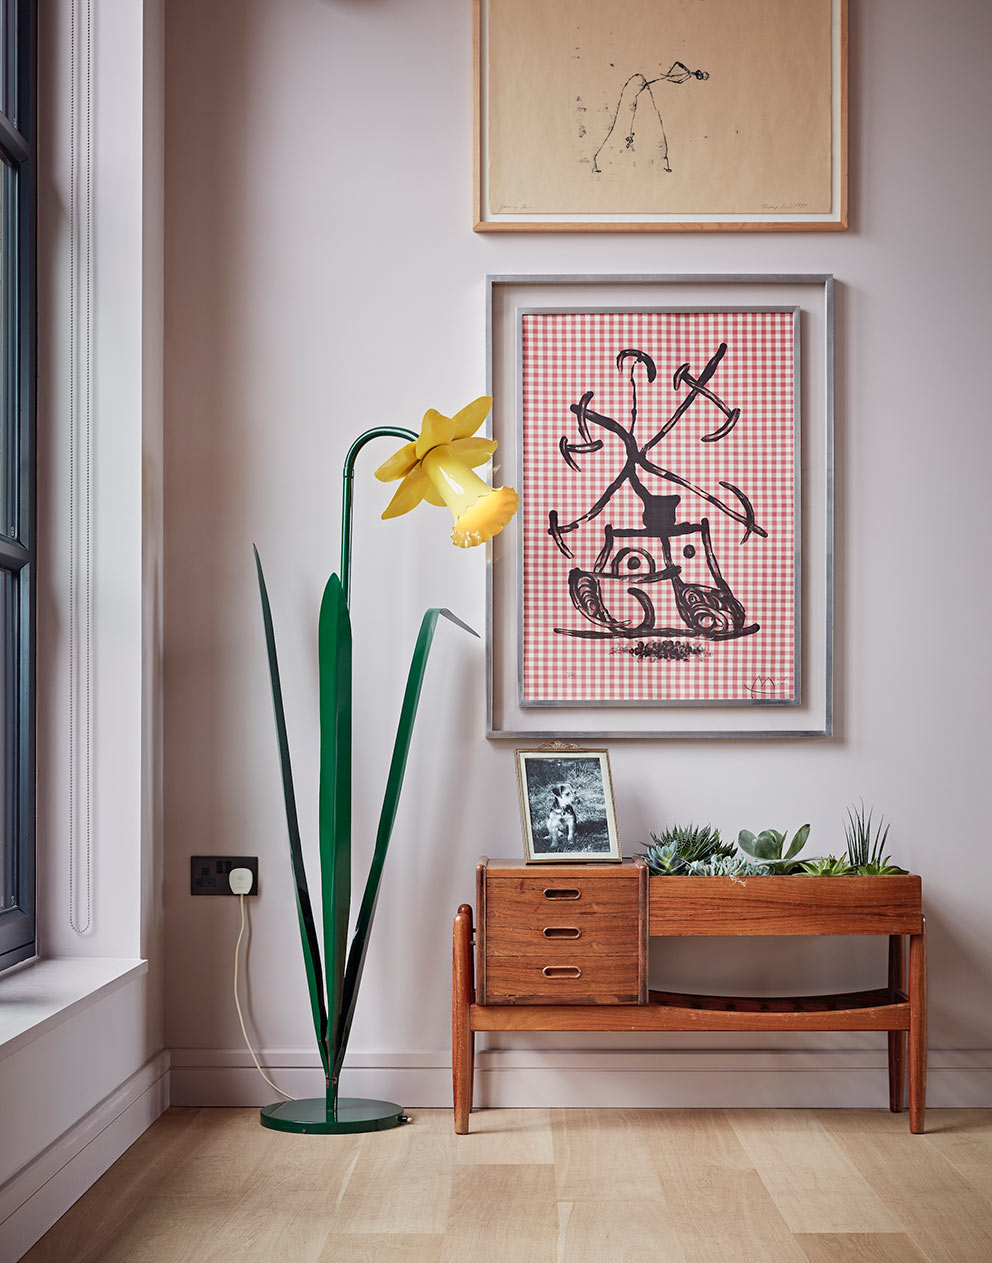 West London pied-a-terre kitsch daffodil lamp